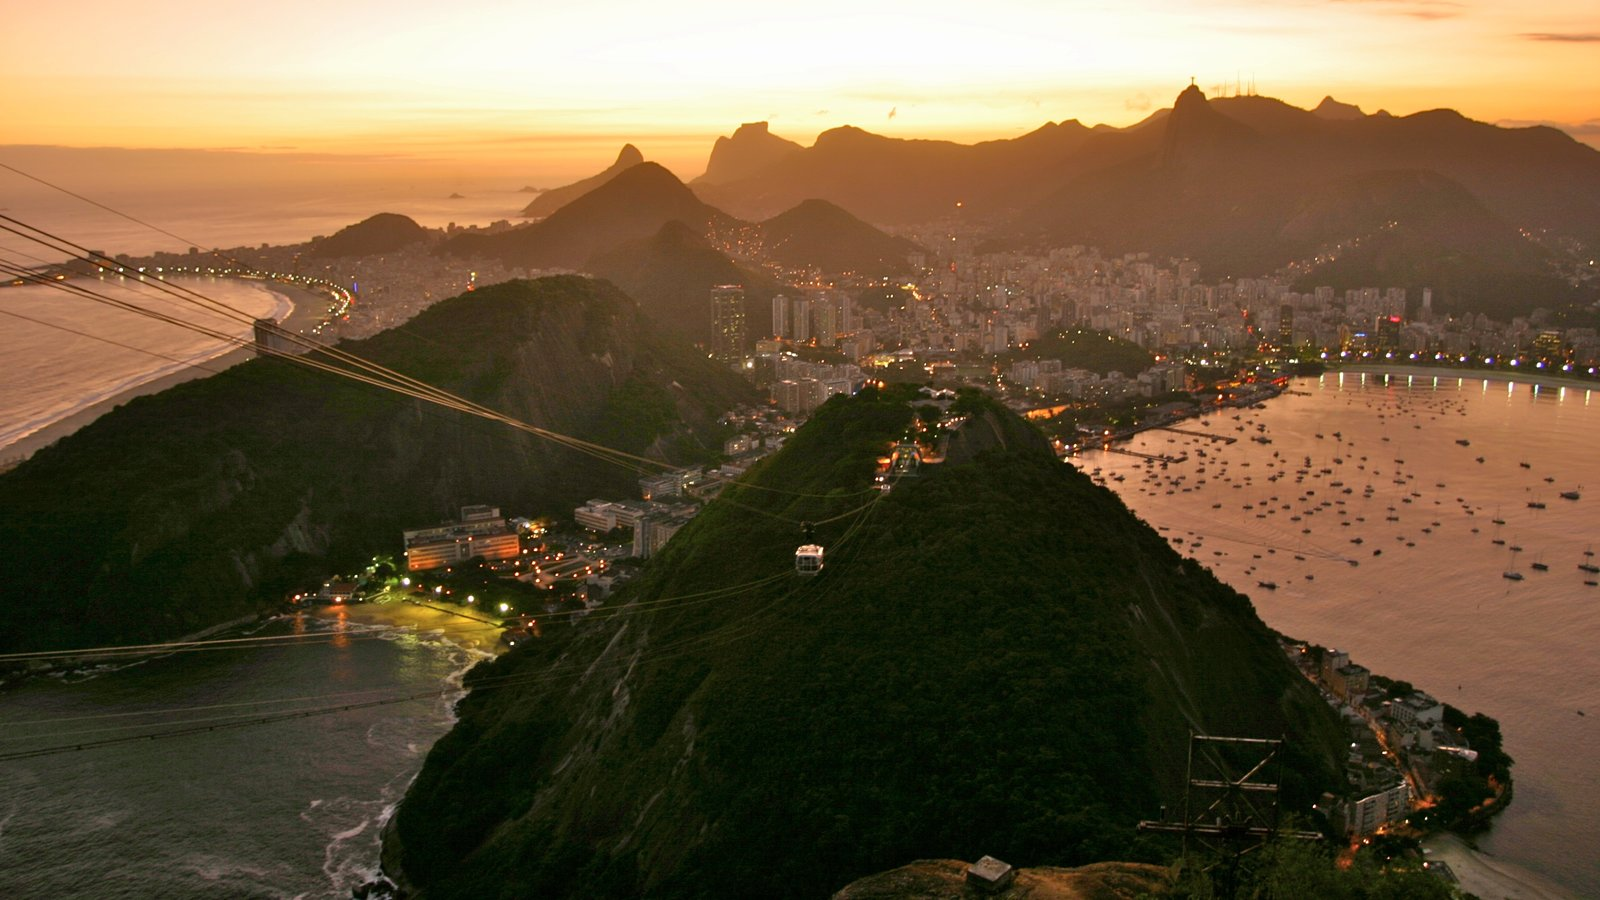 Rio de Janeiro which includes general coastal views, a sunset and mountains